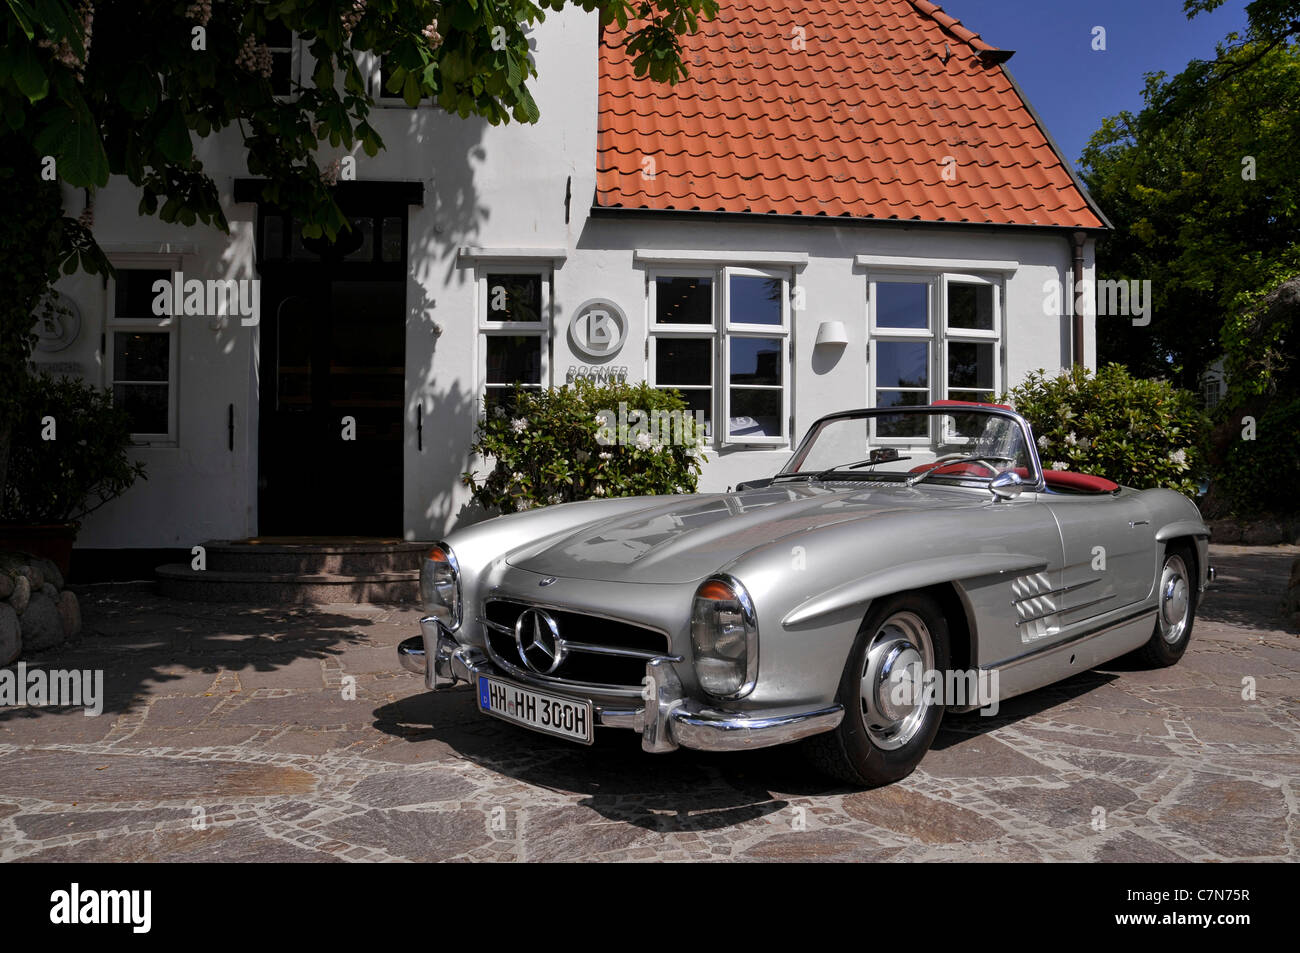 Mercedes Benz 300 SL Cabriolet vintage car, altered registration ...